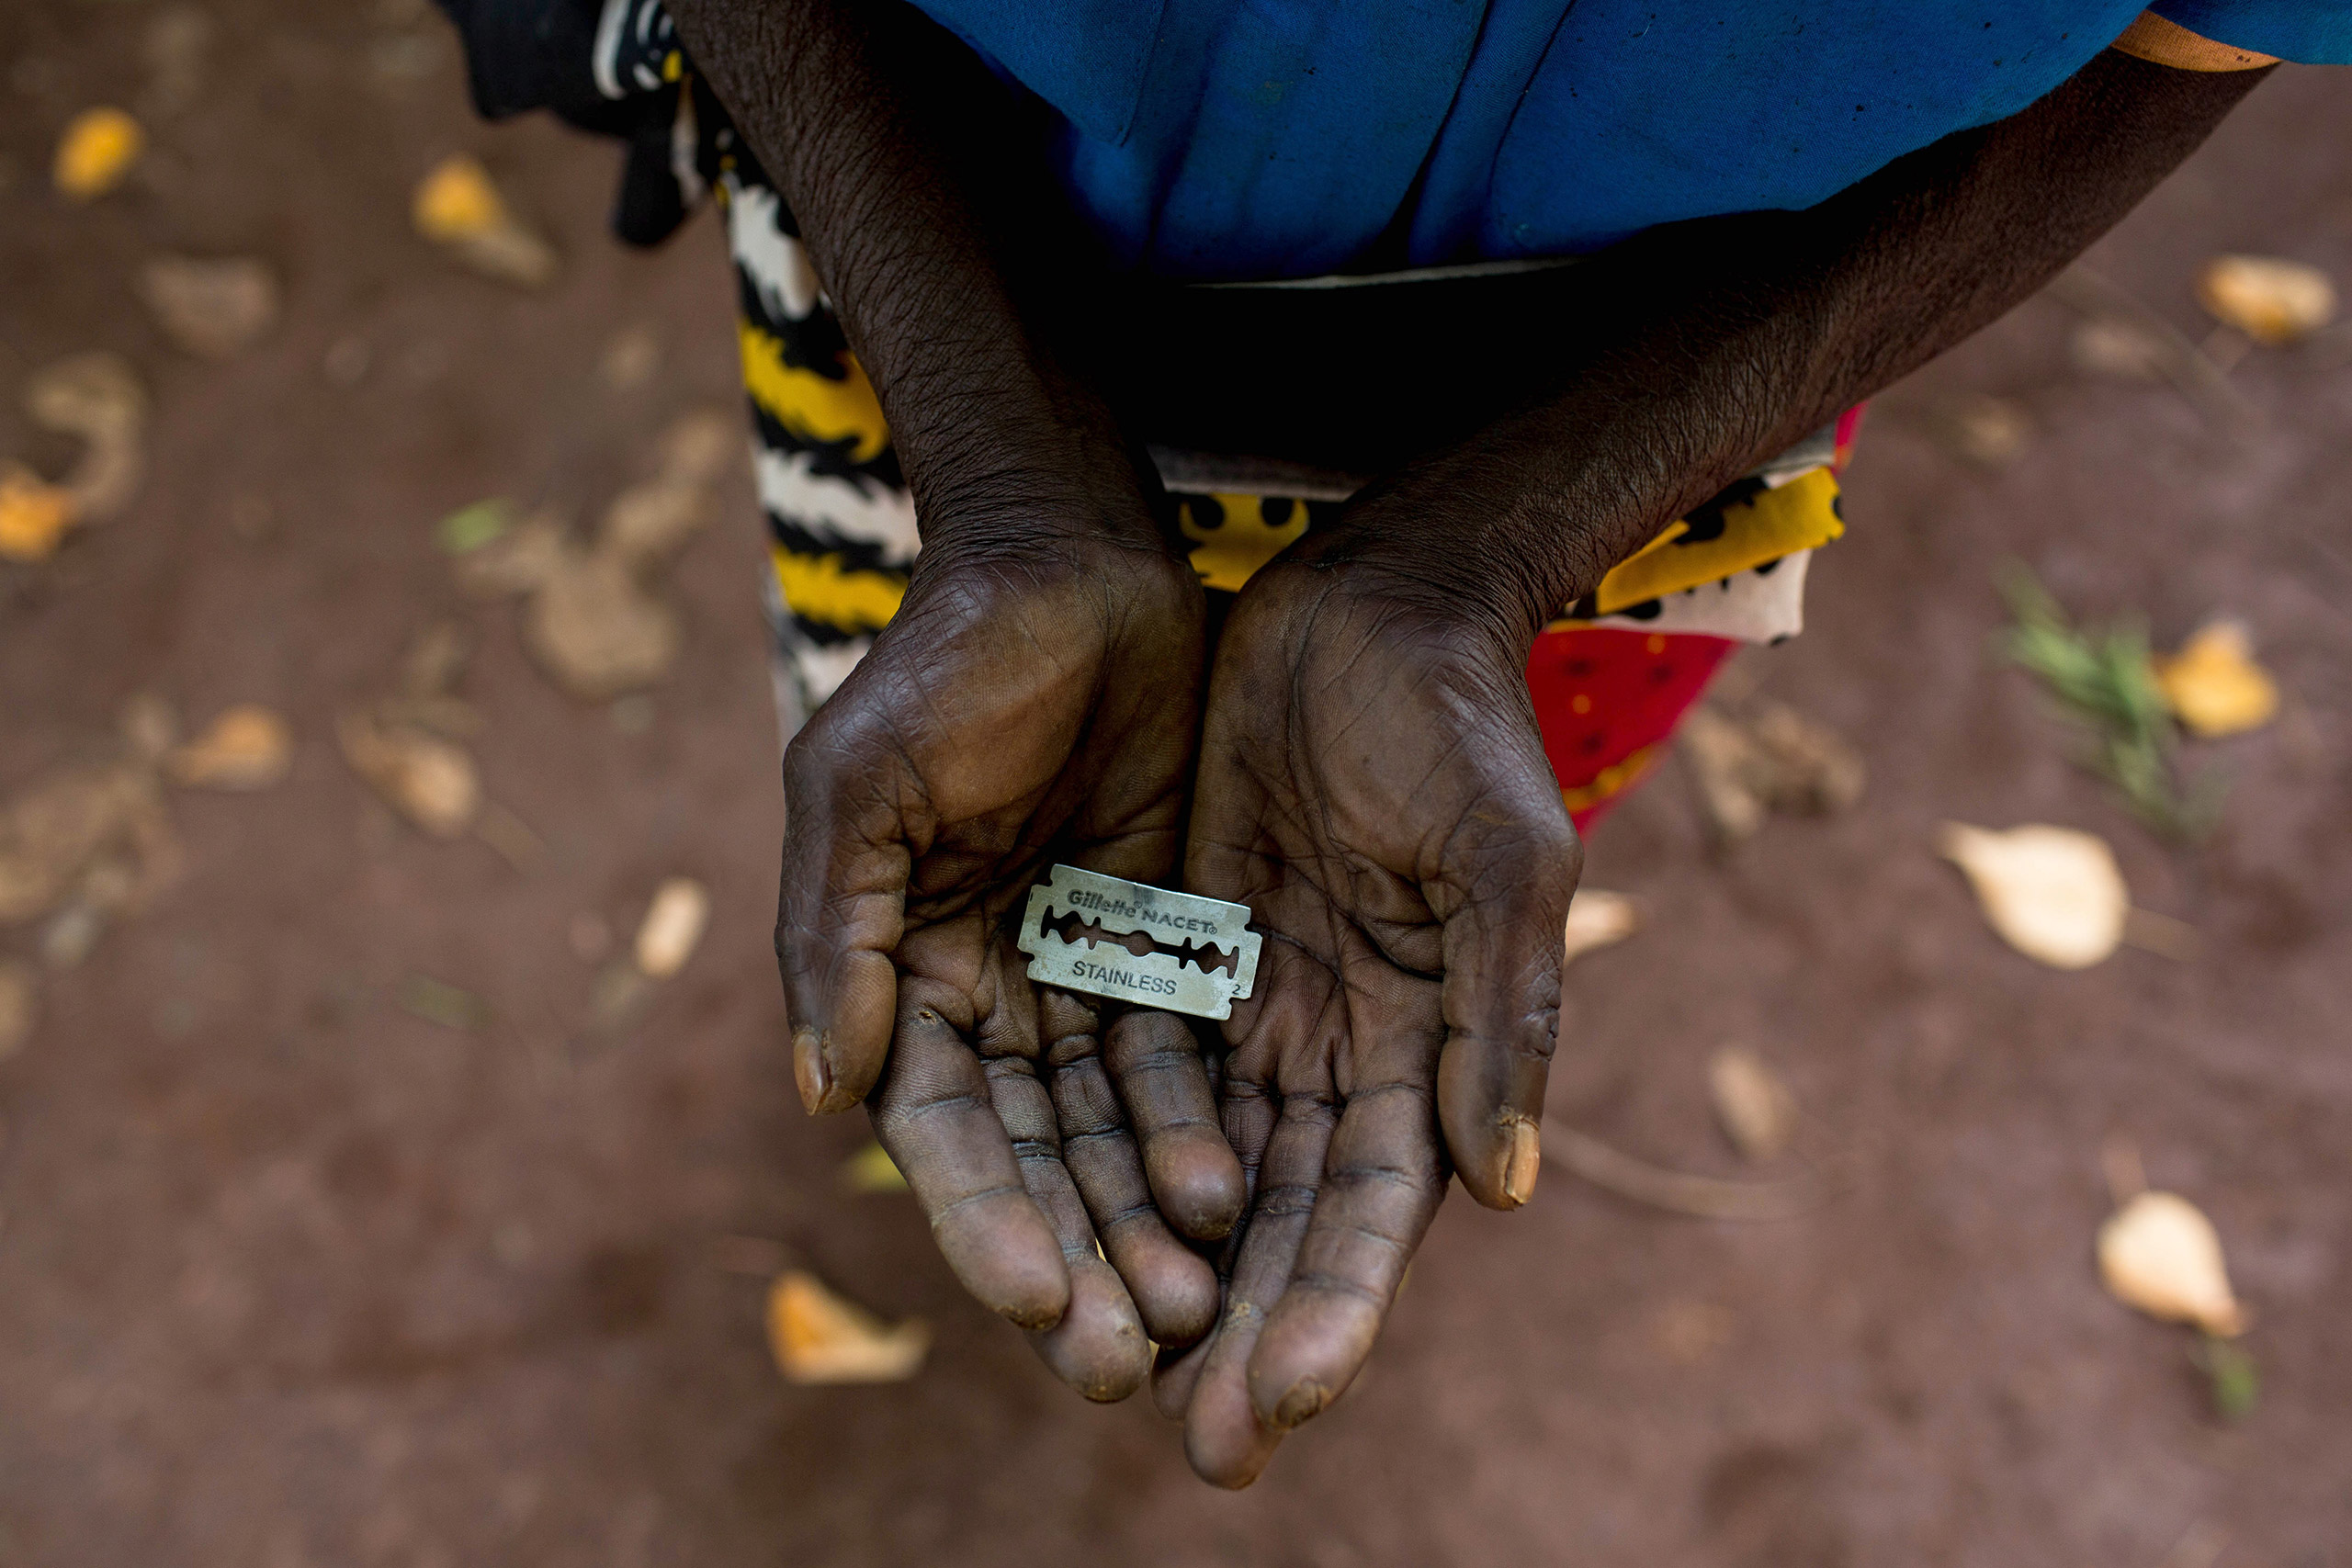 A woman shows the razor blade that she uses to cut girls' genitals in Mombasa, Kenya, June 25, 2015.